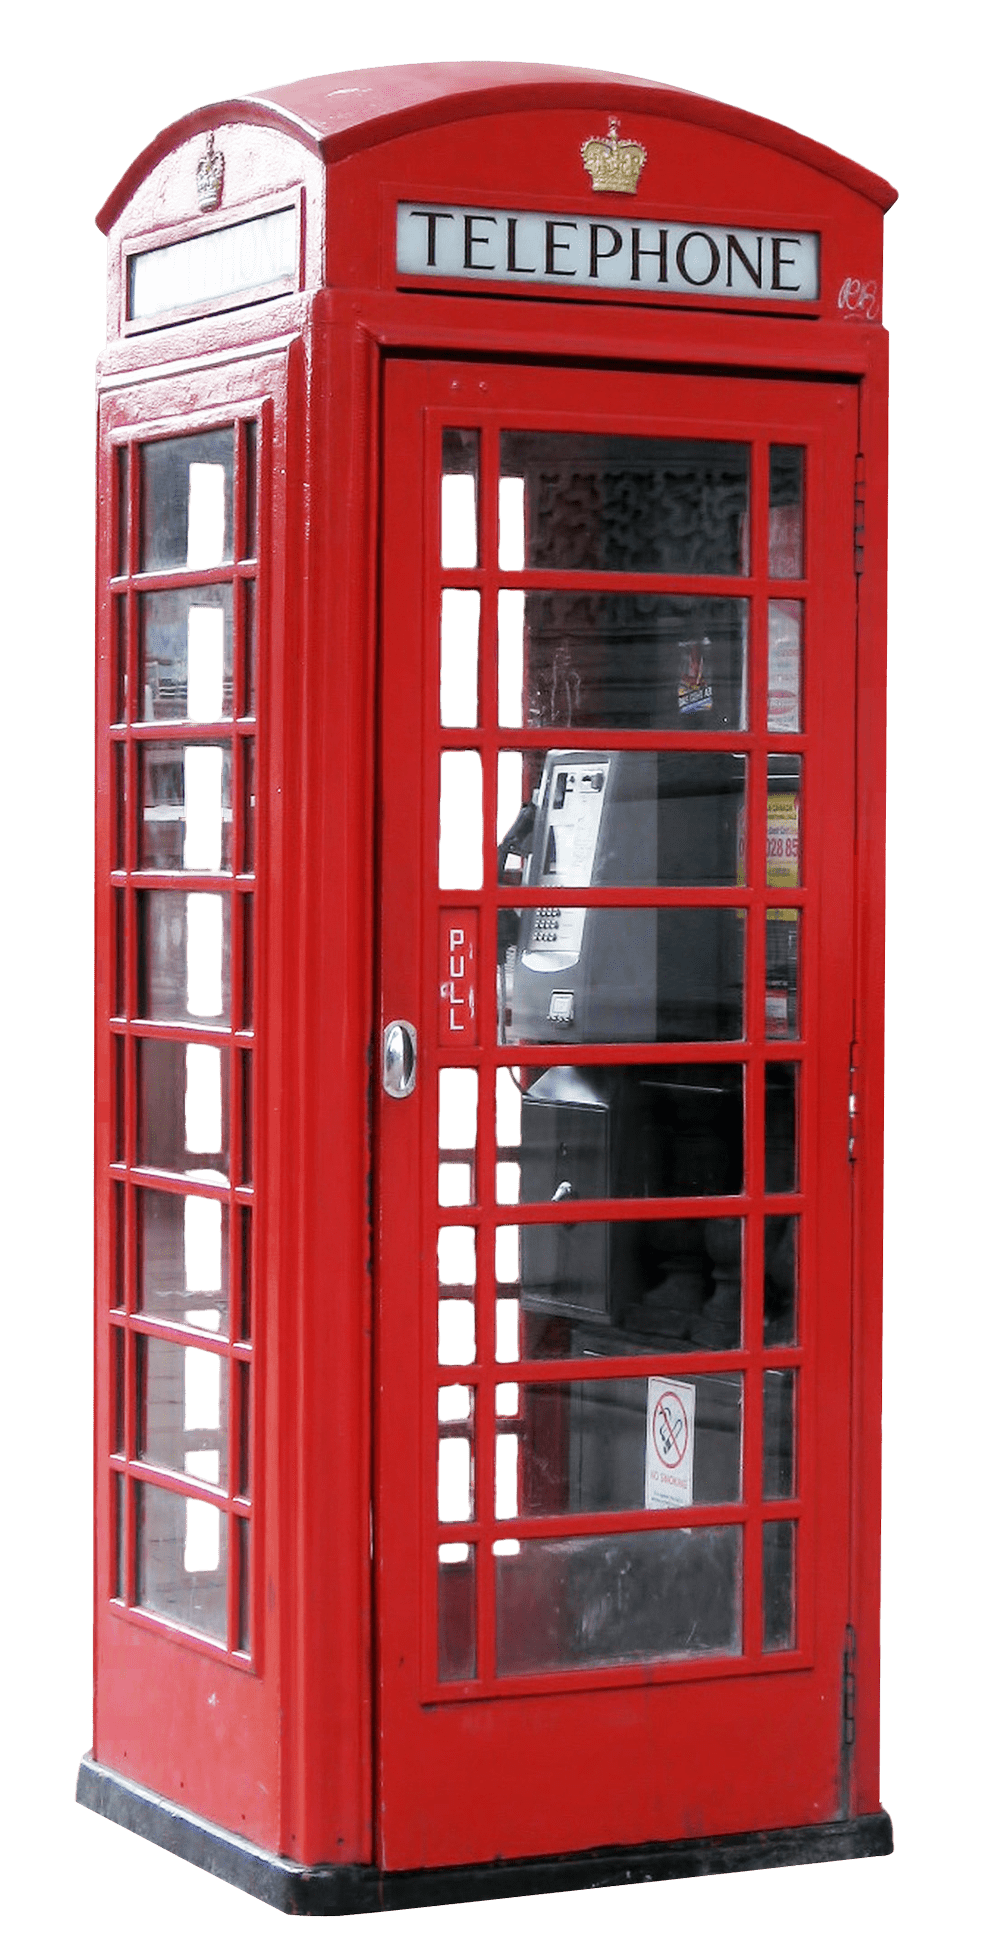 Phone Booth PNG Image.